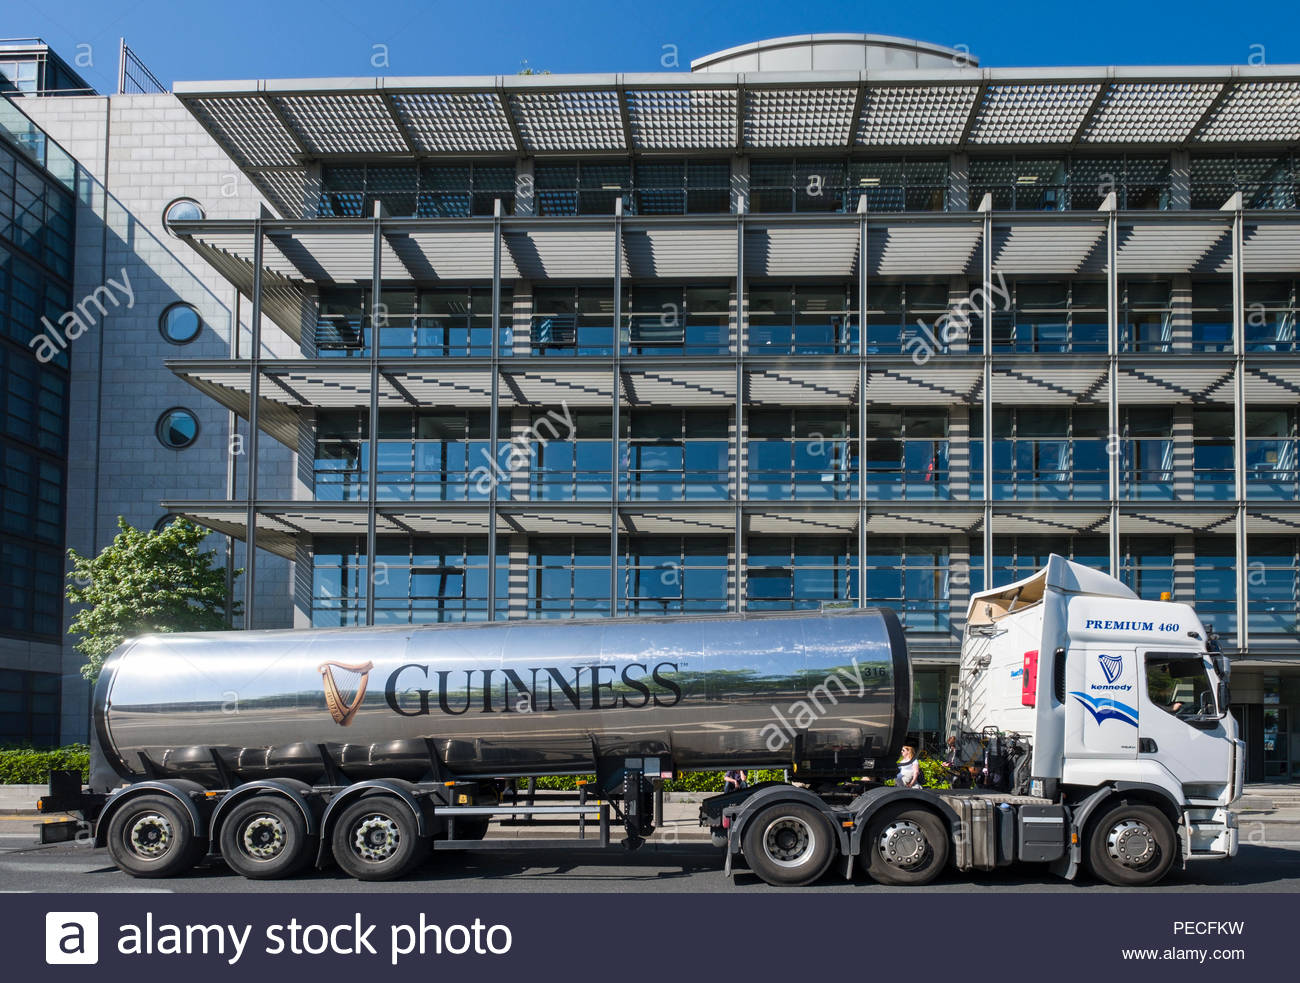 Tanker Trailer Stock Photos & Tanker Trailer Stock Images - Alamy